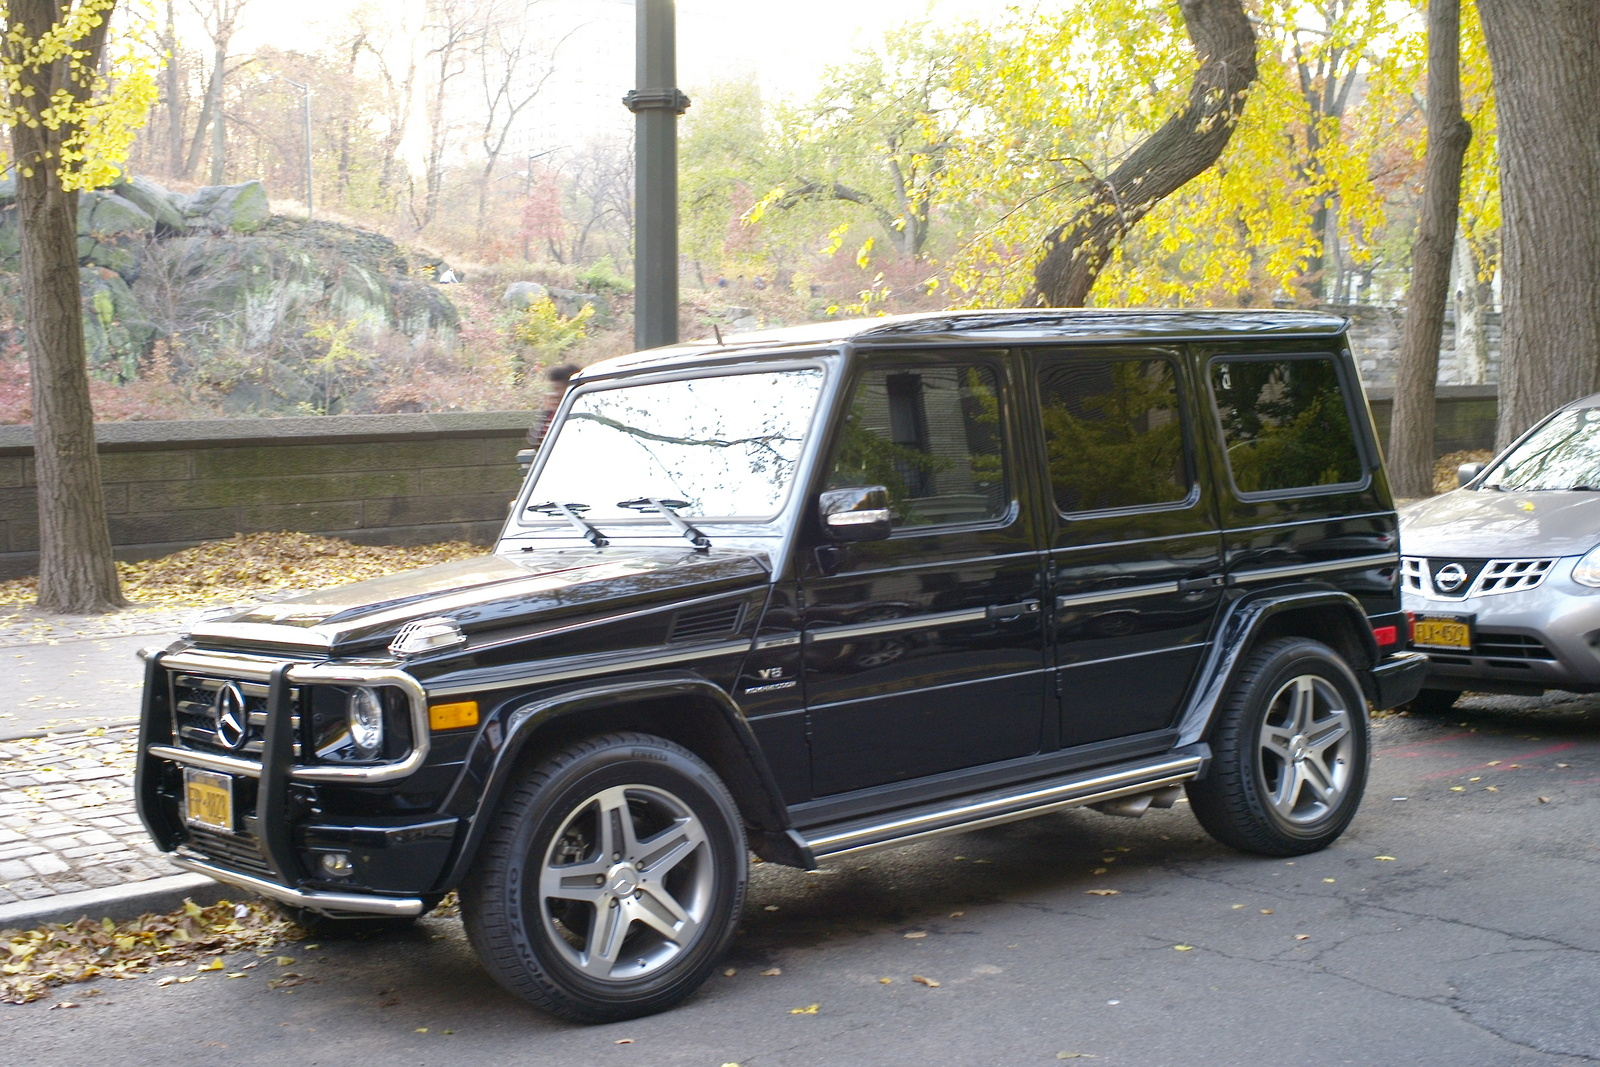 Mercedes Benz G Class Leon Valley likewise Nereden Nereye 9 Mercedes Benz G Class additionally Mercedes G55 Amg Interior additionally 98530 Megaupload Founder Kim Schmitz Car S Being Seized in addition Mercedes G Class Amg 2014. on 2010 mercedes g55 amg interior